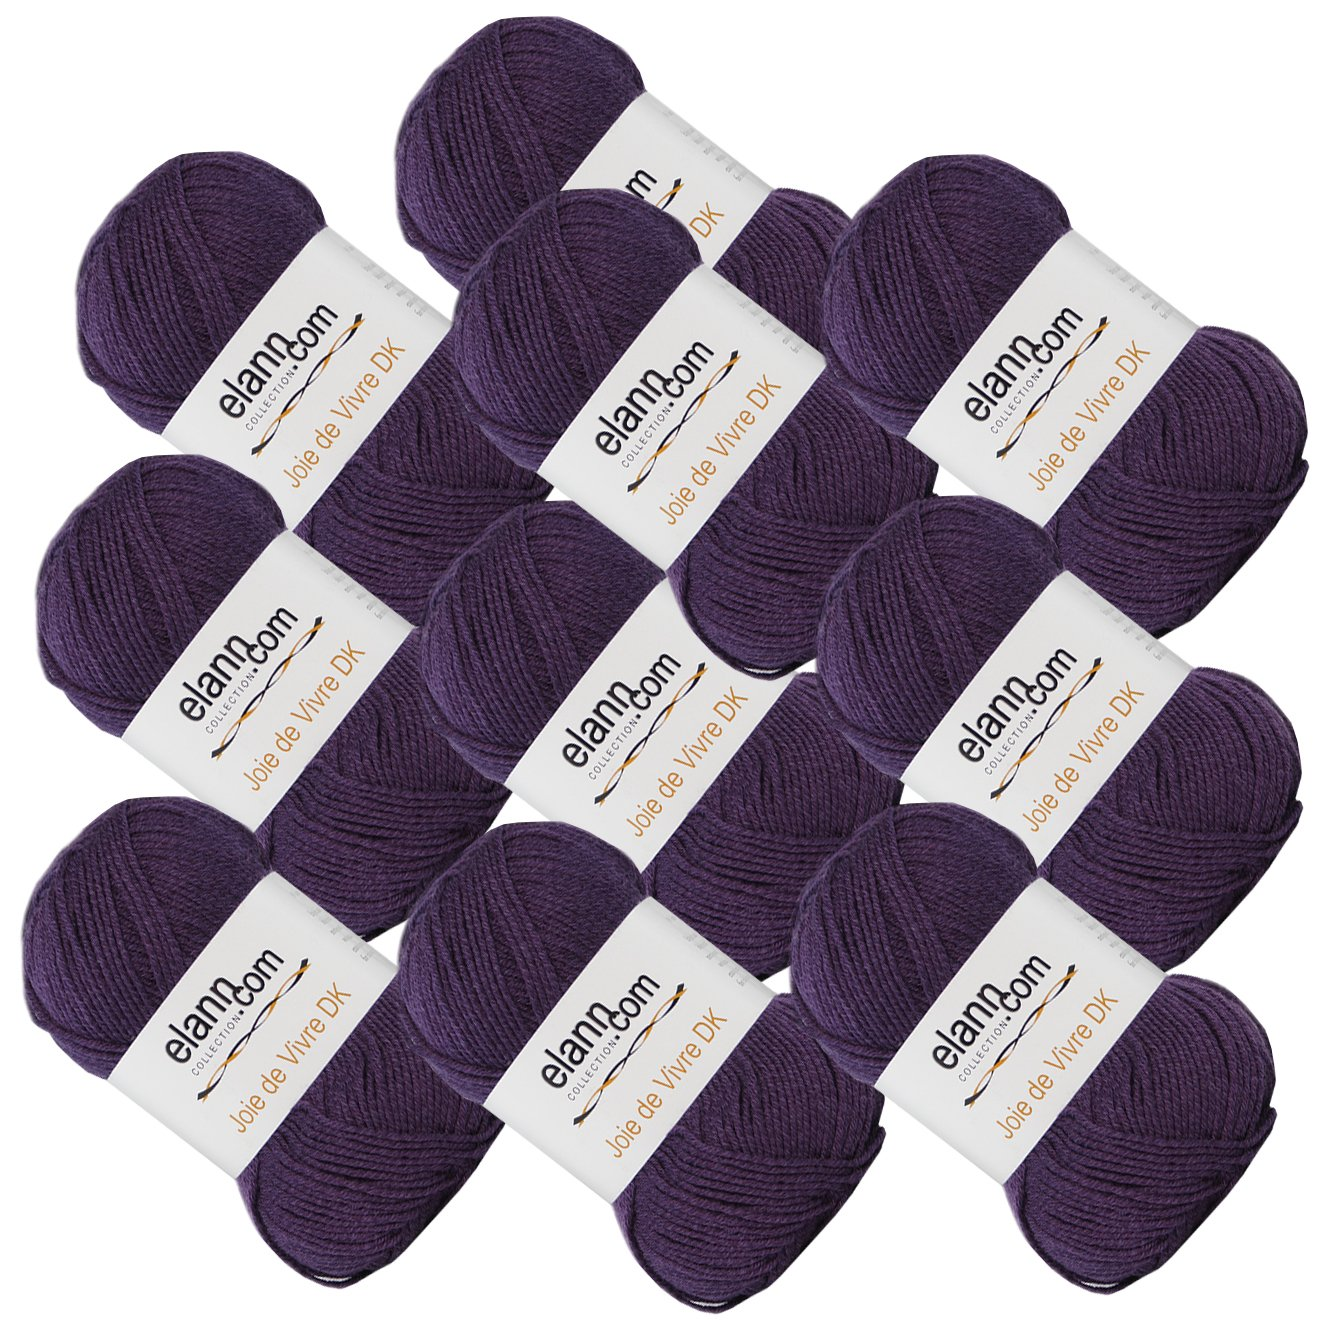 elann Joie de Vivre DK Yarn | 10 Ball Bag | 04 Plum Purple